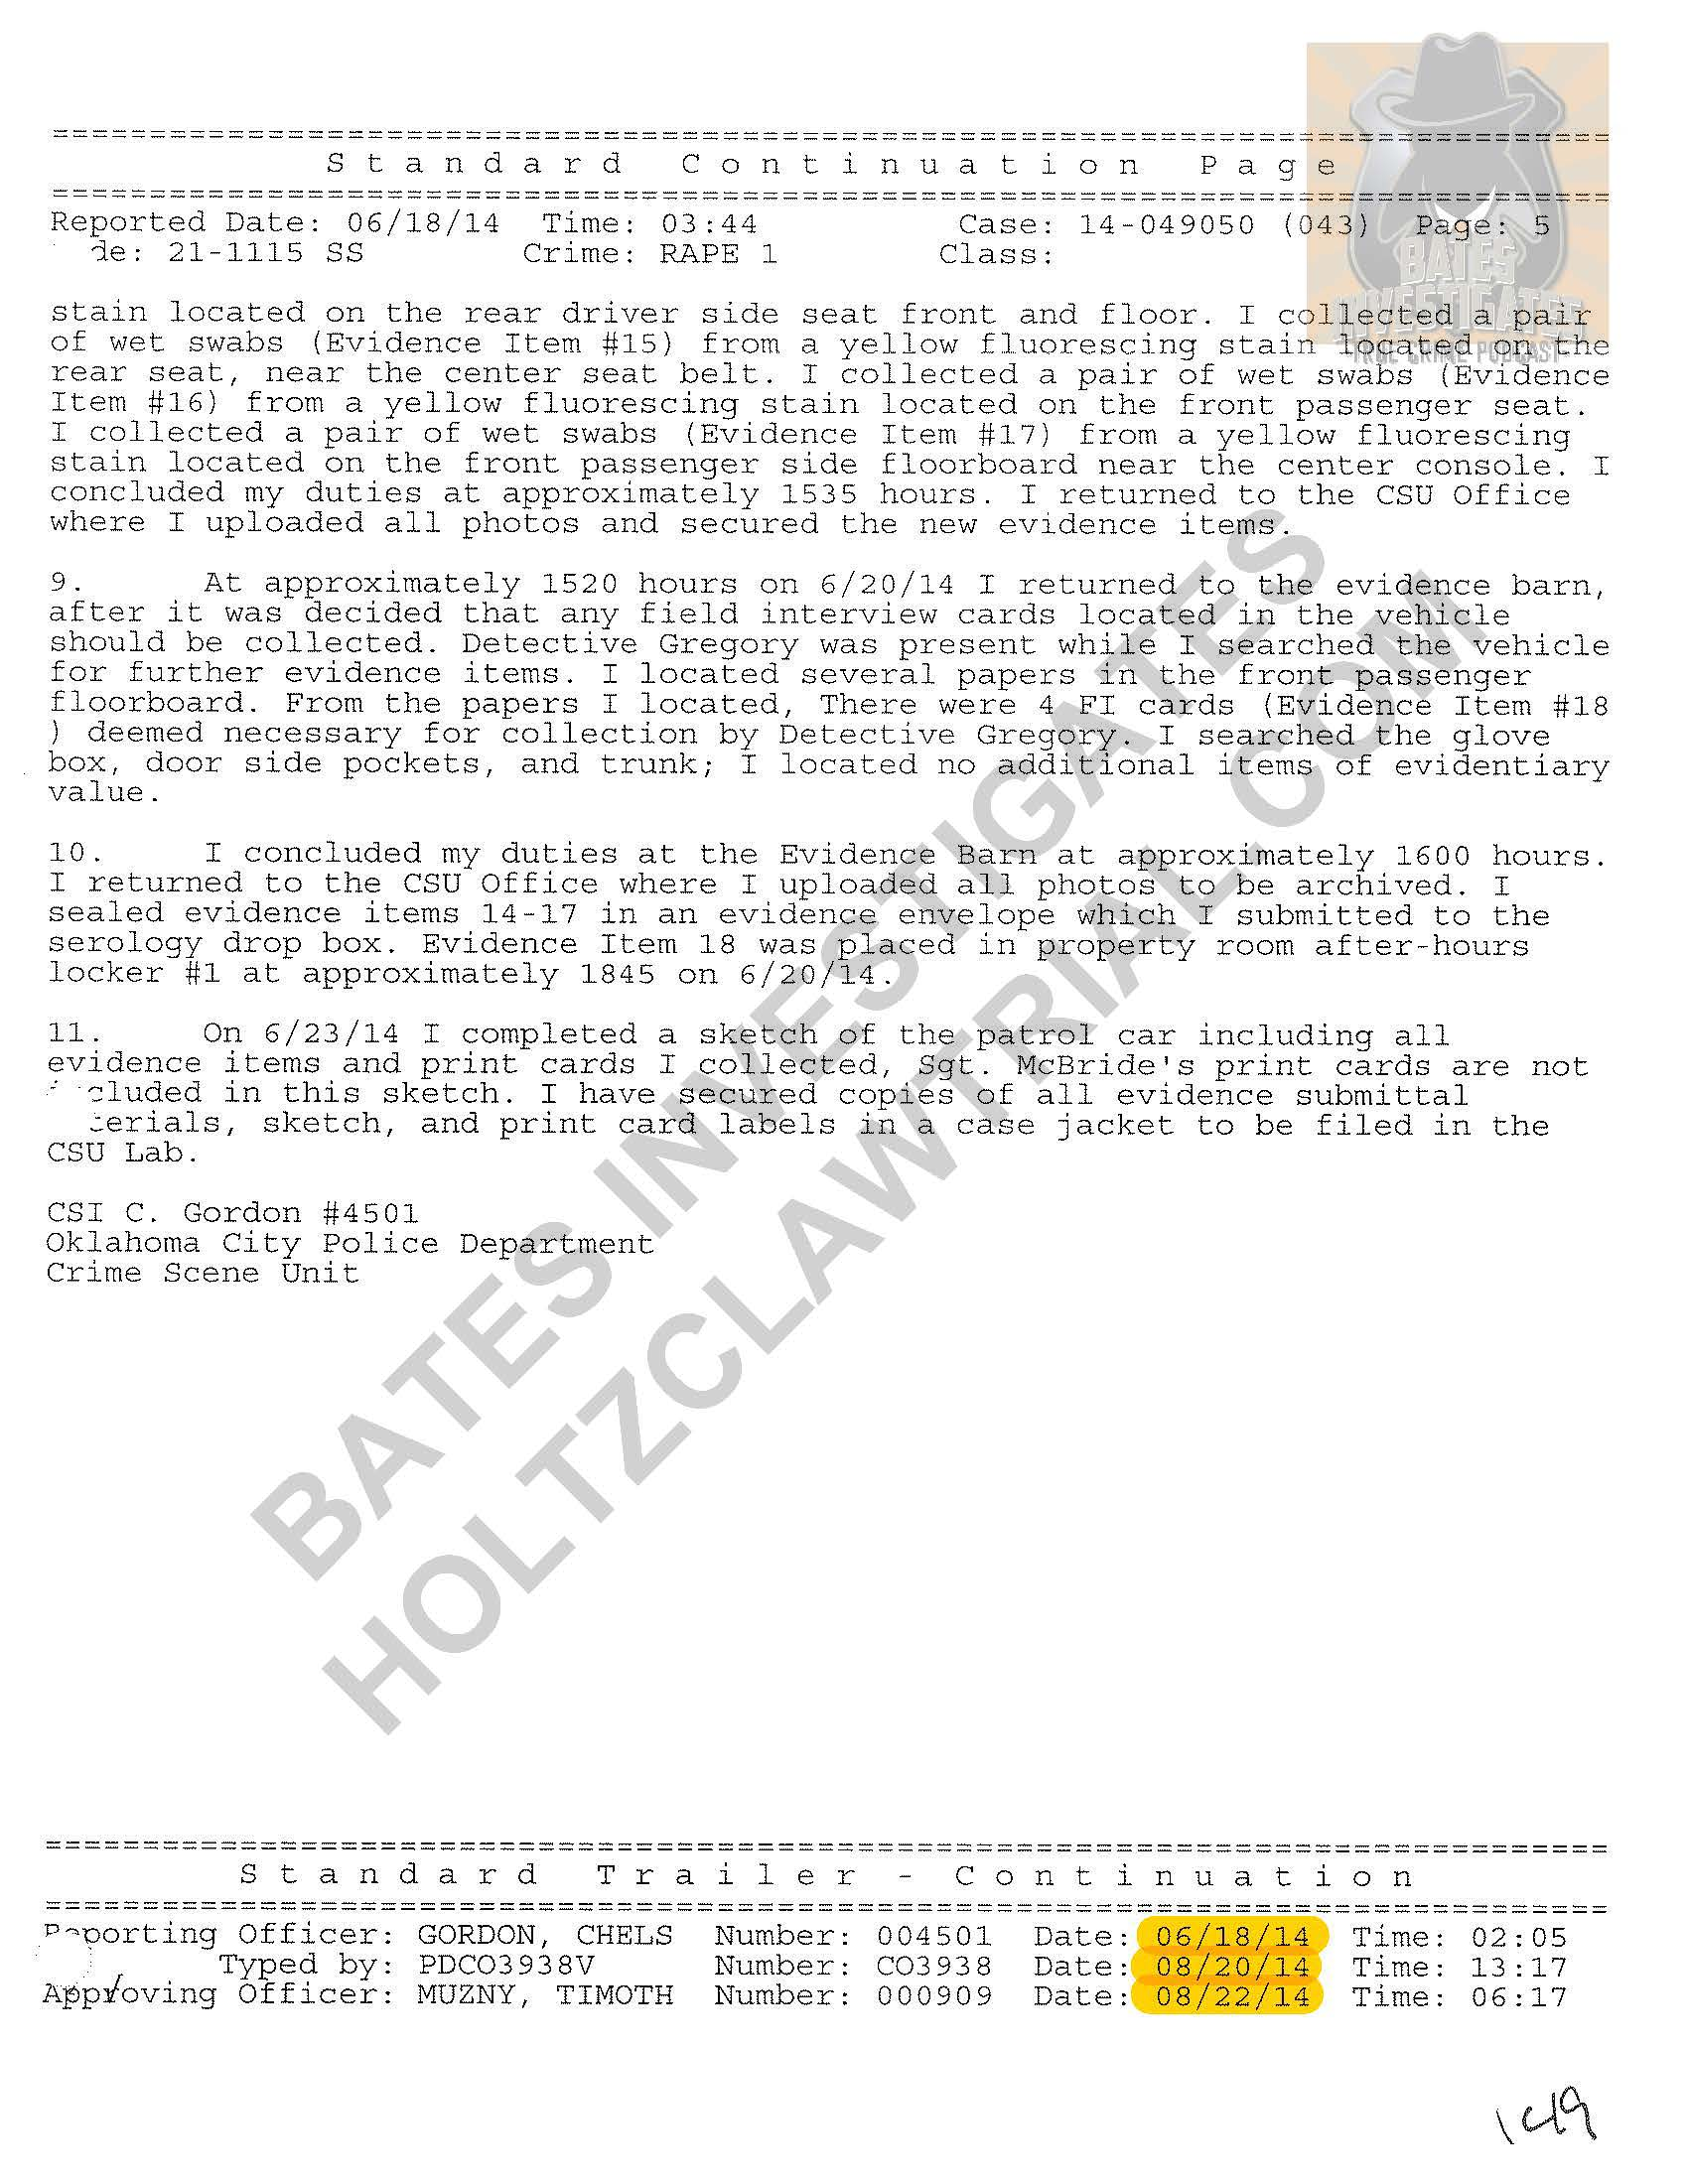 Holtzclaw - Ep02 - Police Reports Watermarked_Page_42.jpg